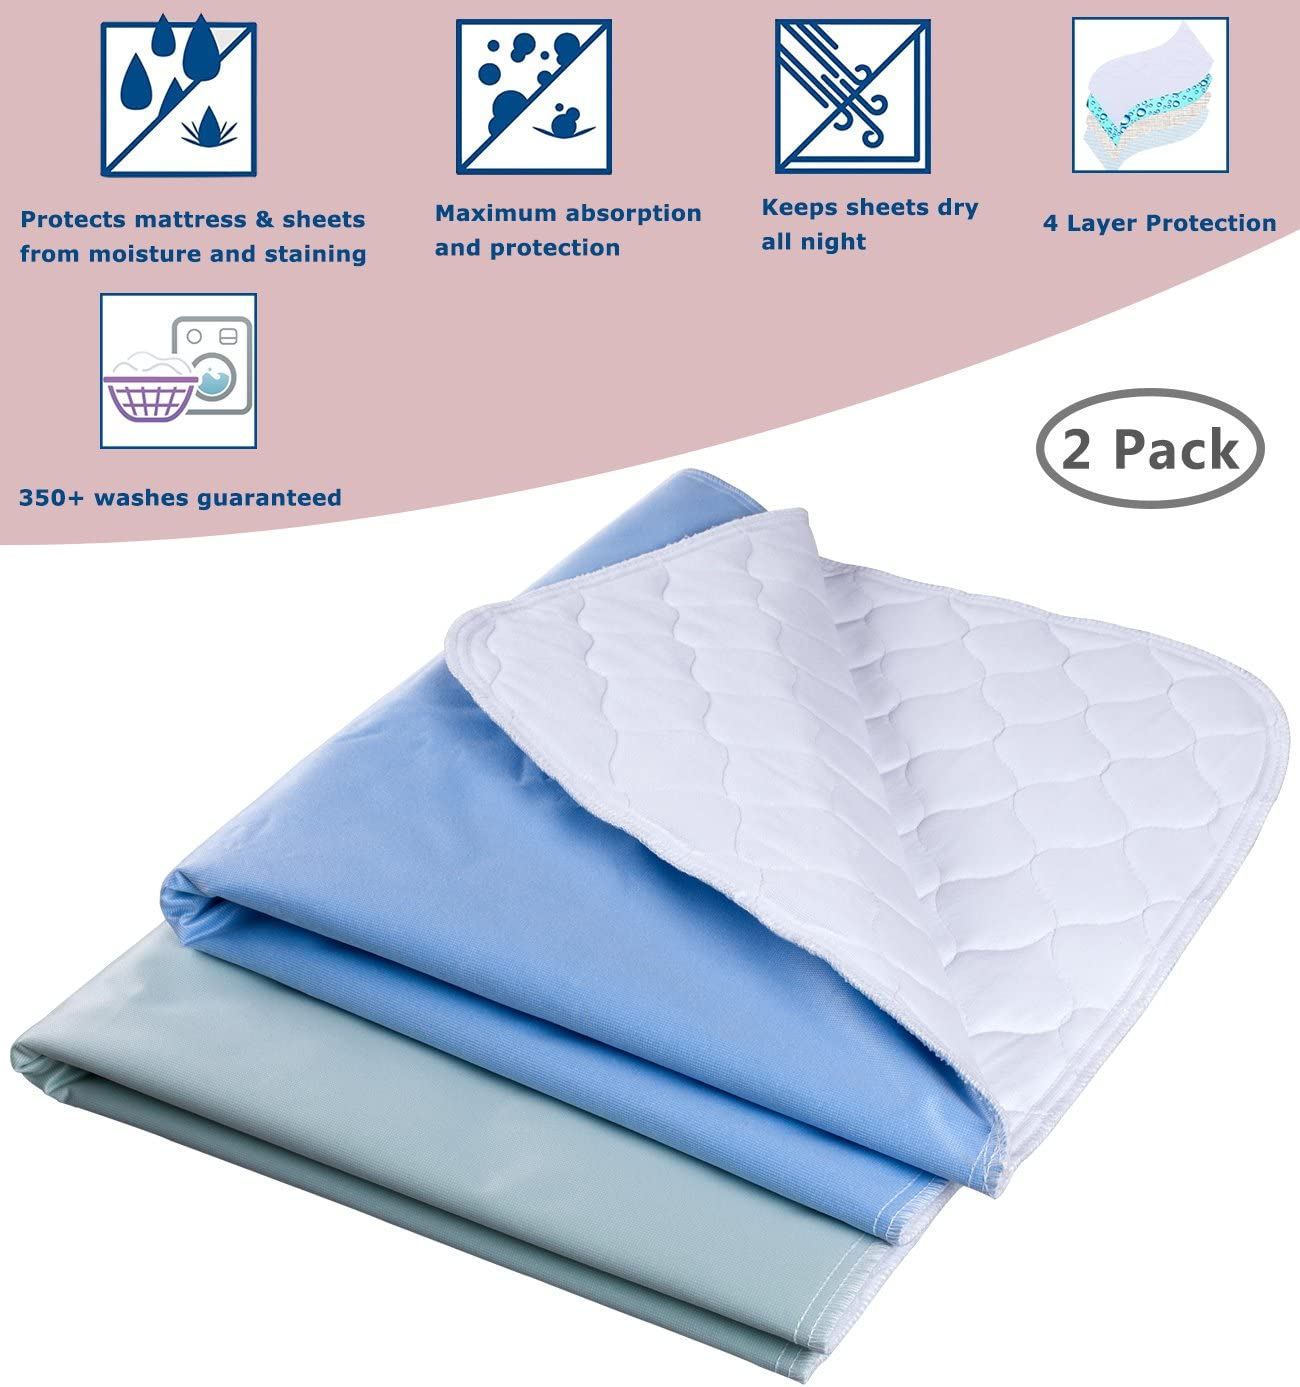 "Waterproof Reusable Incontinence Bed Pads Washable Incontinence Underpads 8 Cups Absorbency, 2 Pack Non-Slip Mattress Protector for Adults, Kids and Pets(28""X 36"" inch): Health & Personal Care"